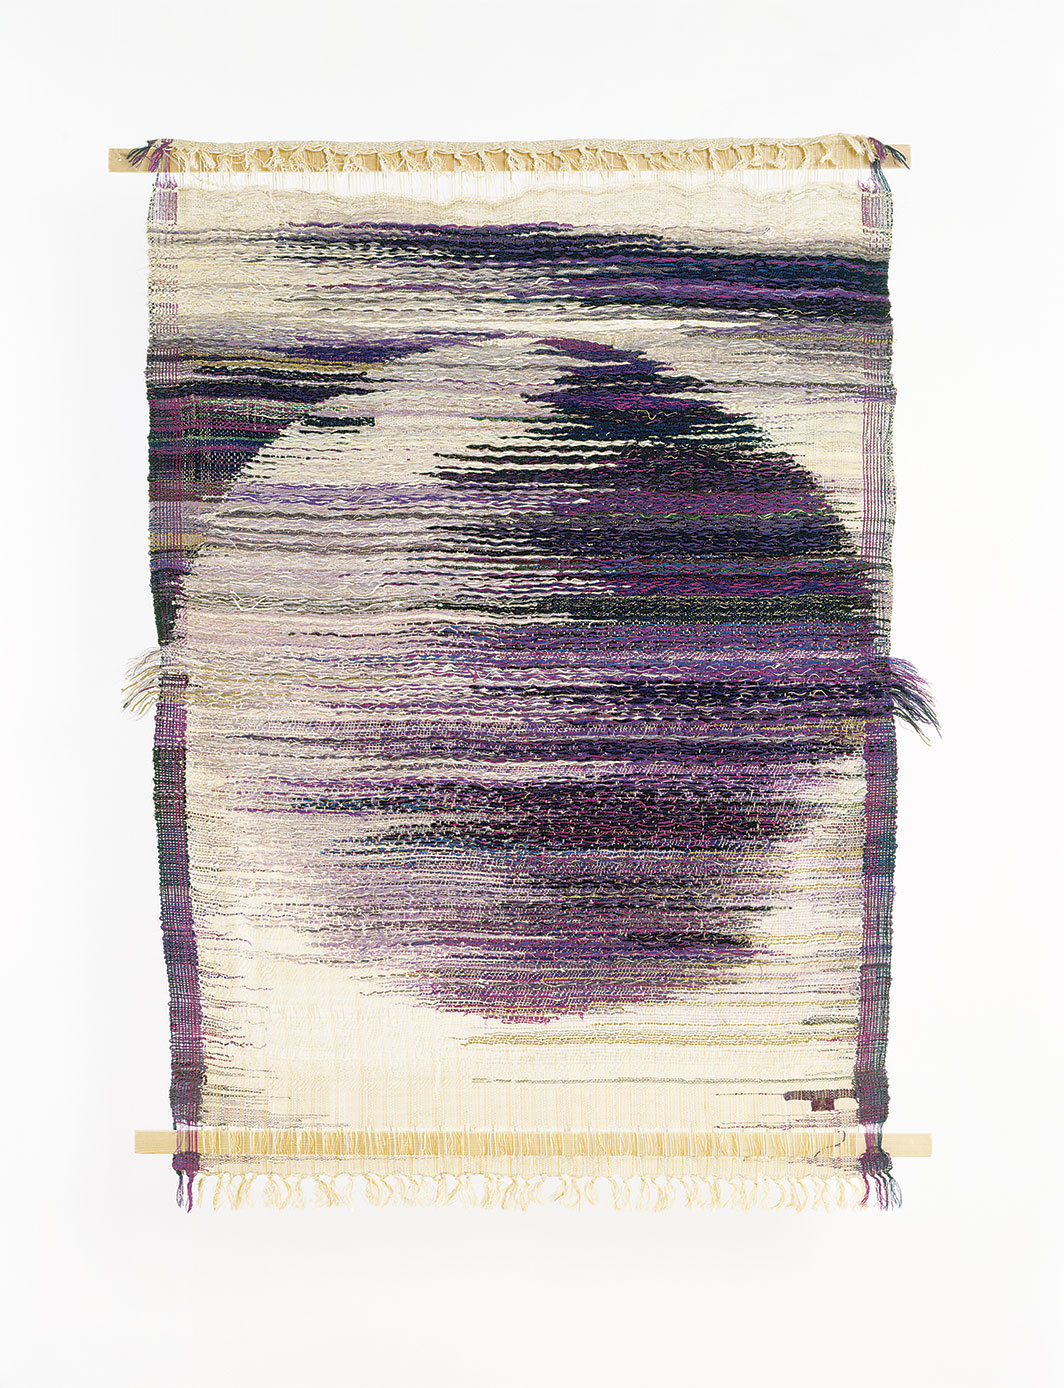 "Lenore Tawney, Jupiter, 1959, silk, wool, wood, 53 × 41""."